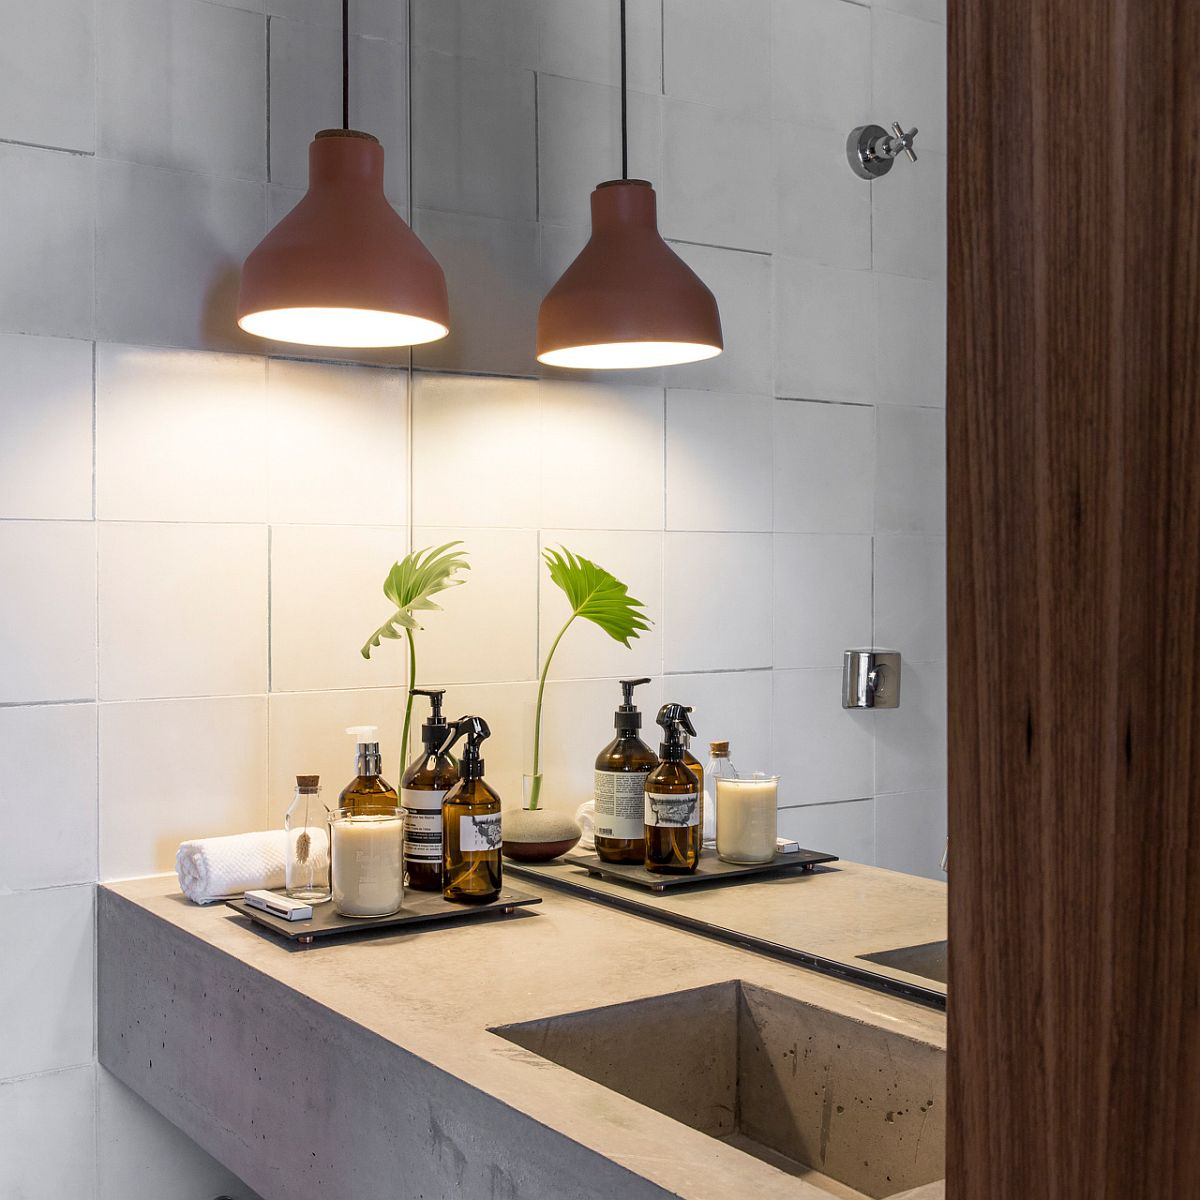 Bespoke concrete vanity and lovely pendant for the industrial-modern bathroom